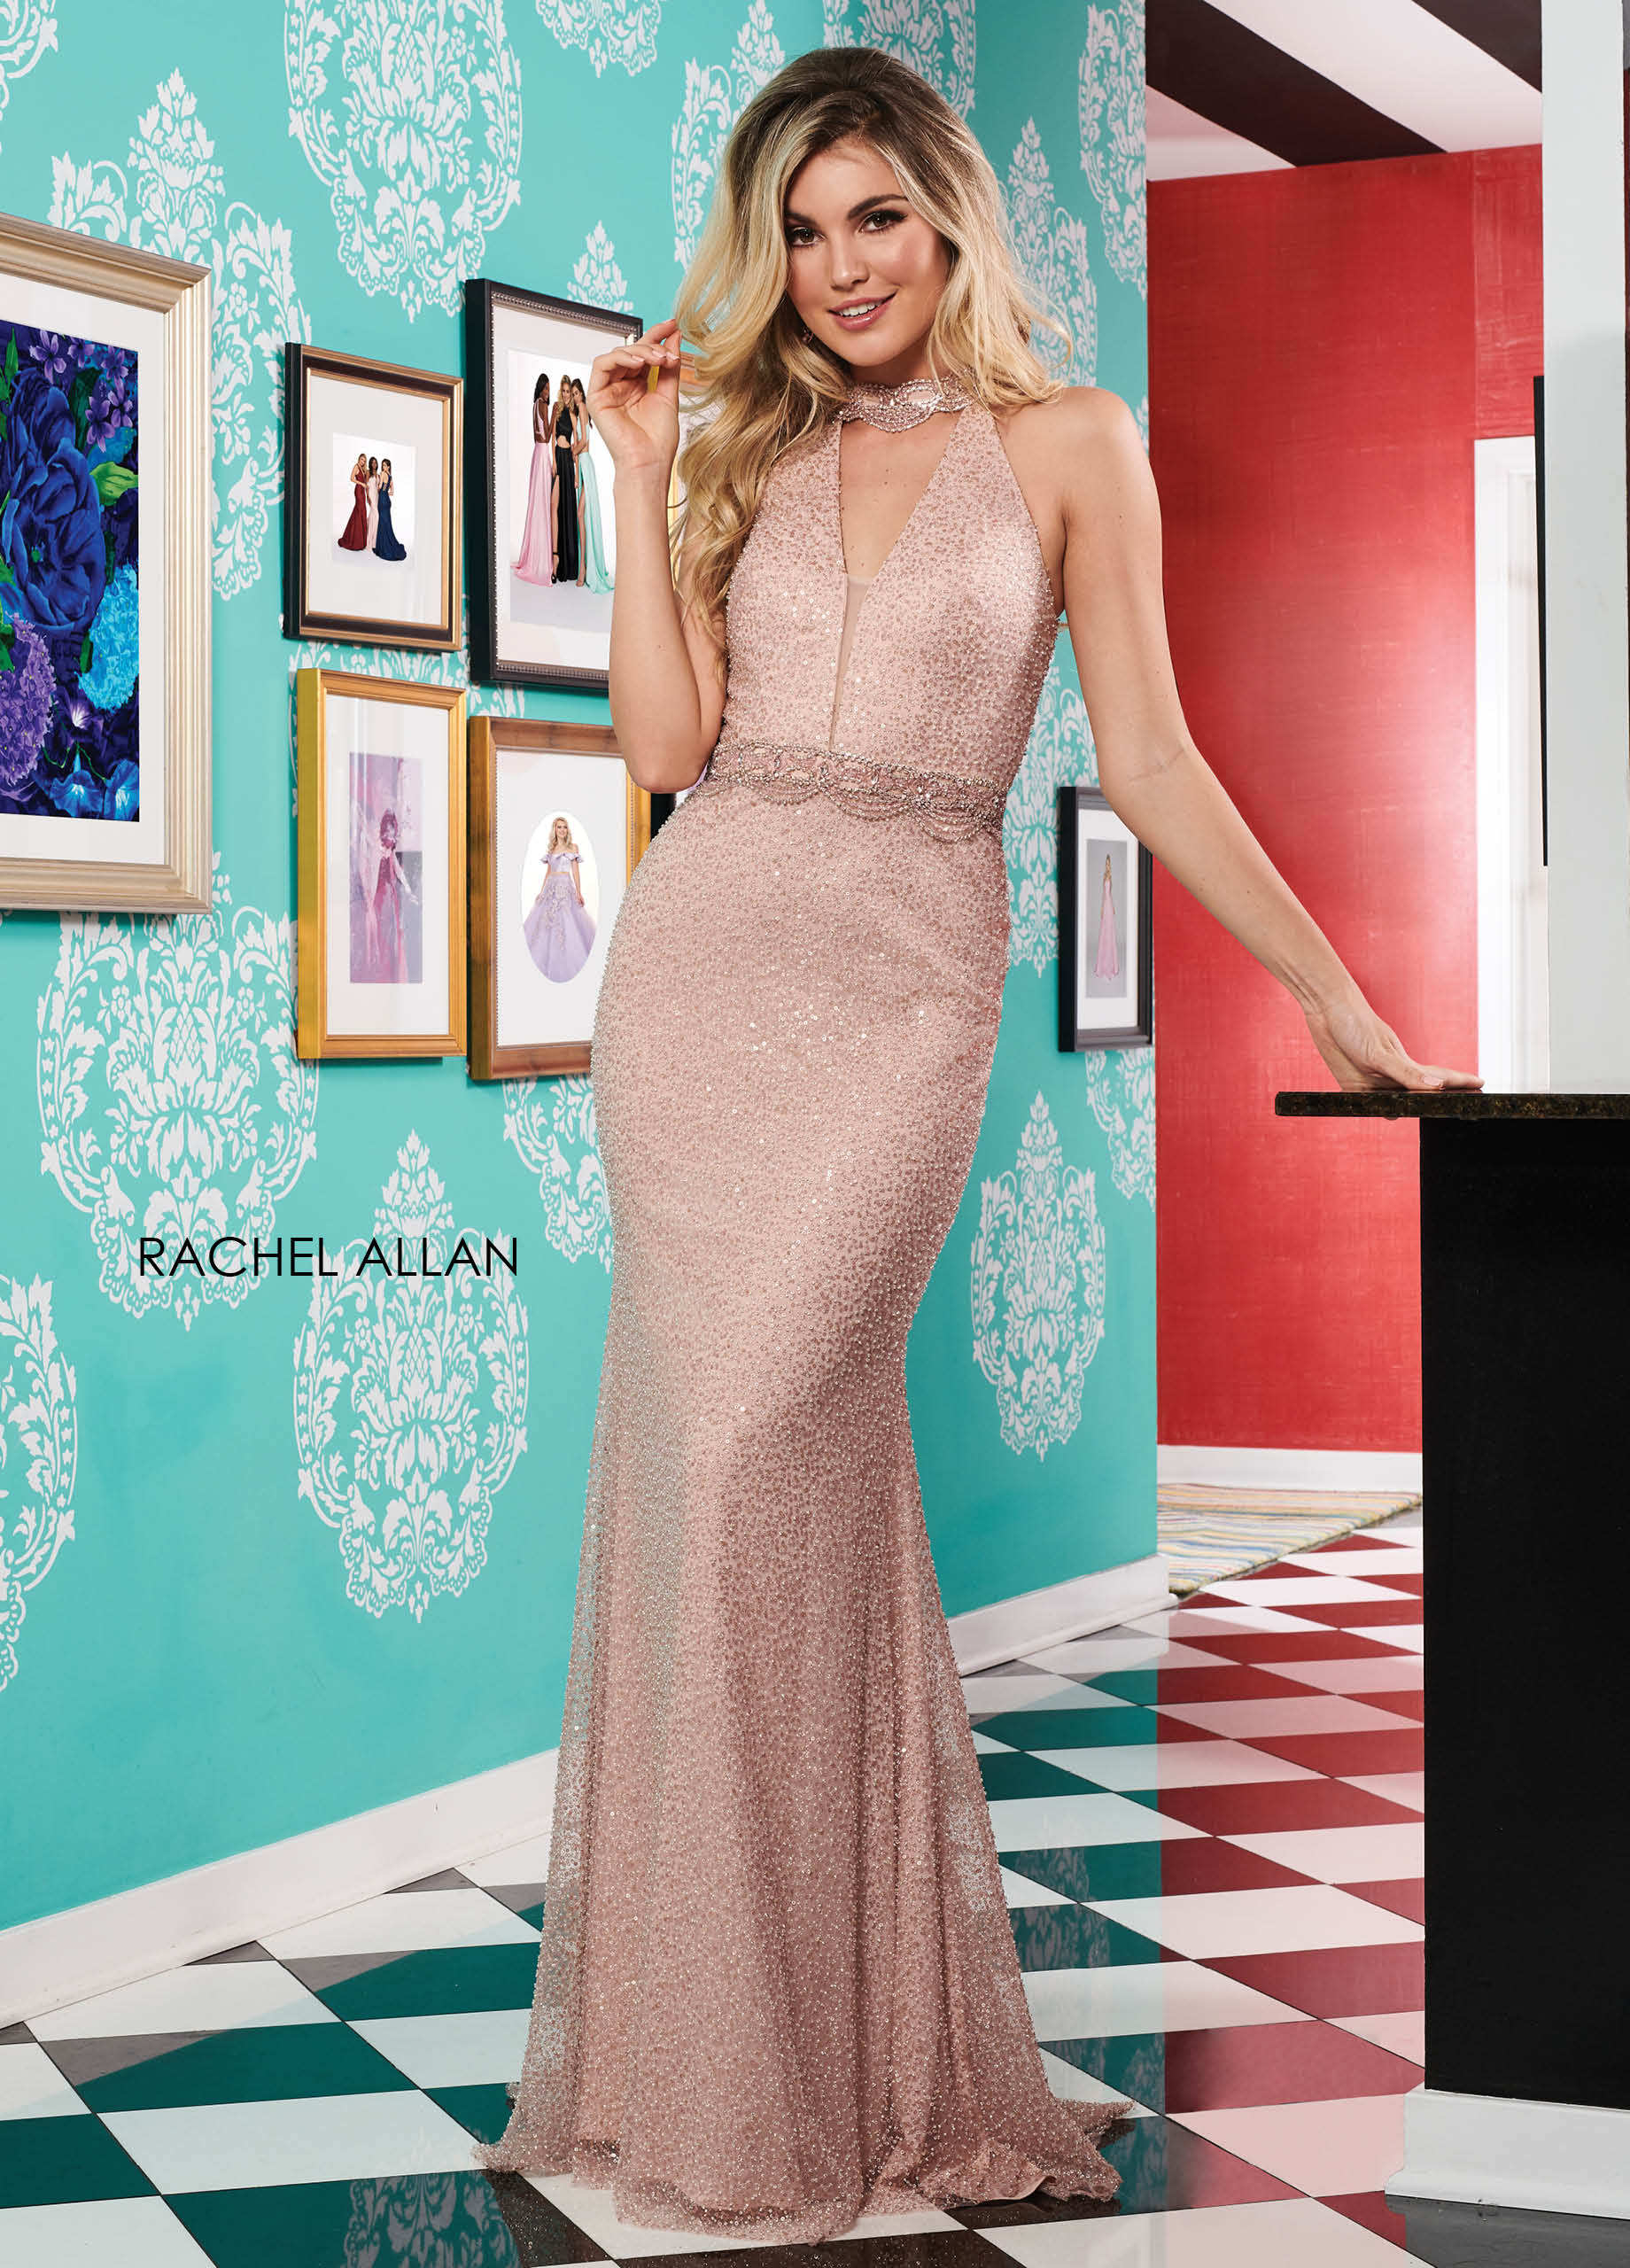 Choker Fit & Flare Prom Dresses in Champagne Color